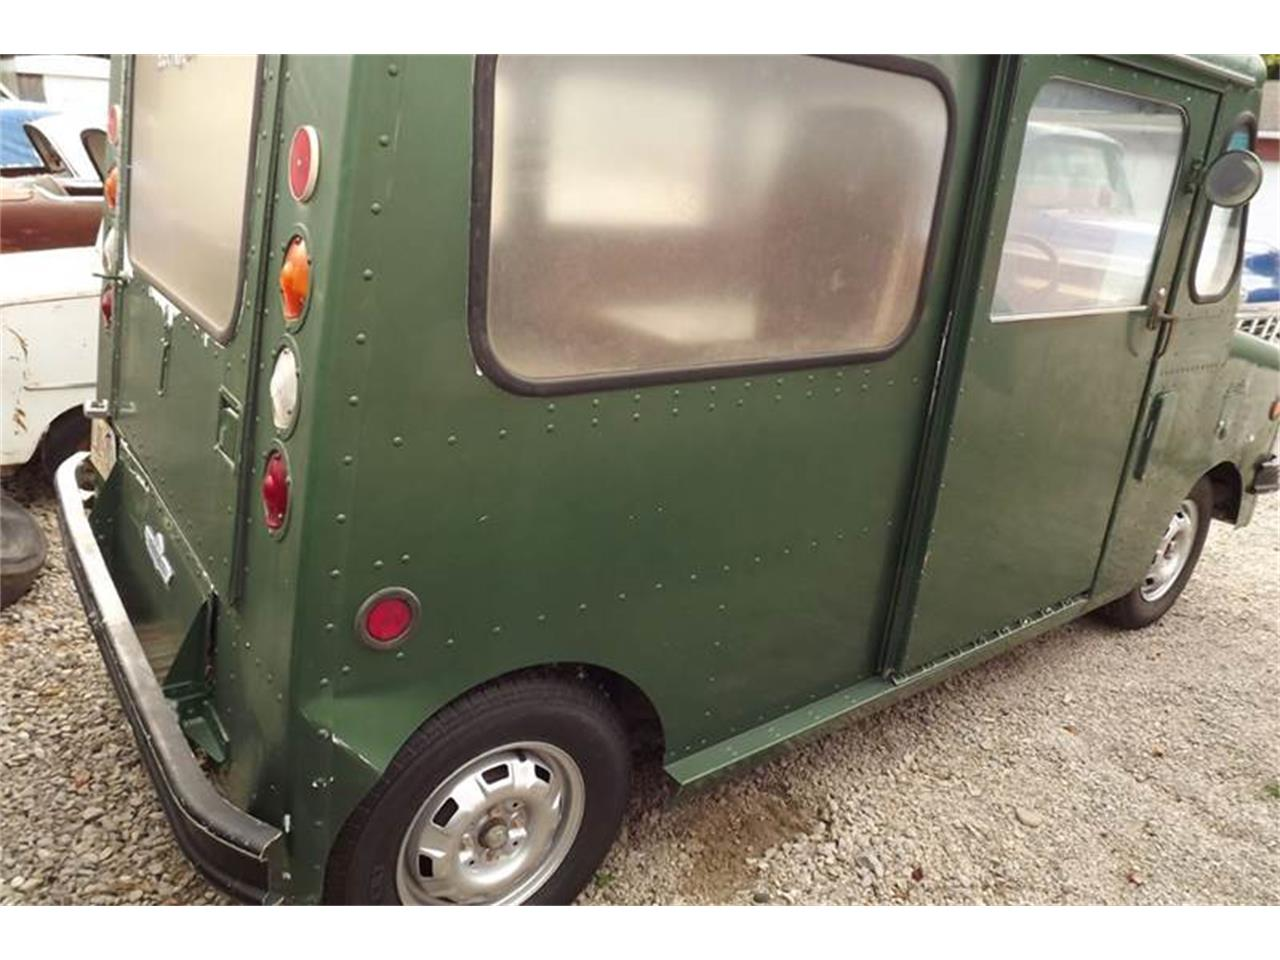 Large Picture of '84 Morgan Olson Van - $6,950.00 Offered by Pro Muscle Car Inc. - NQUD